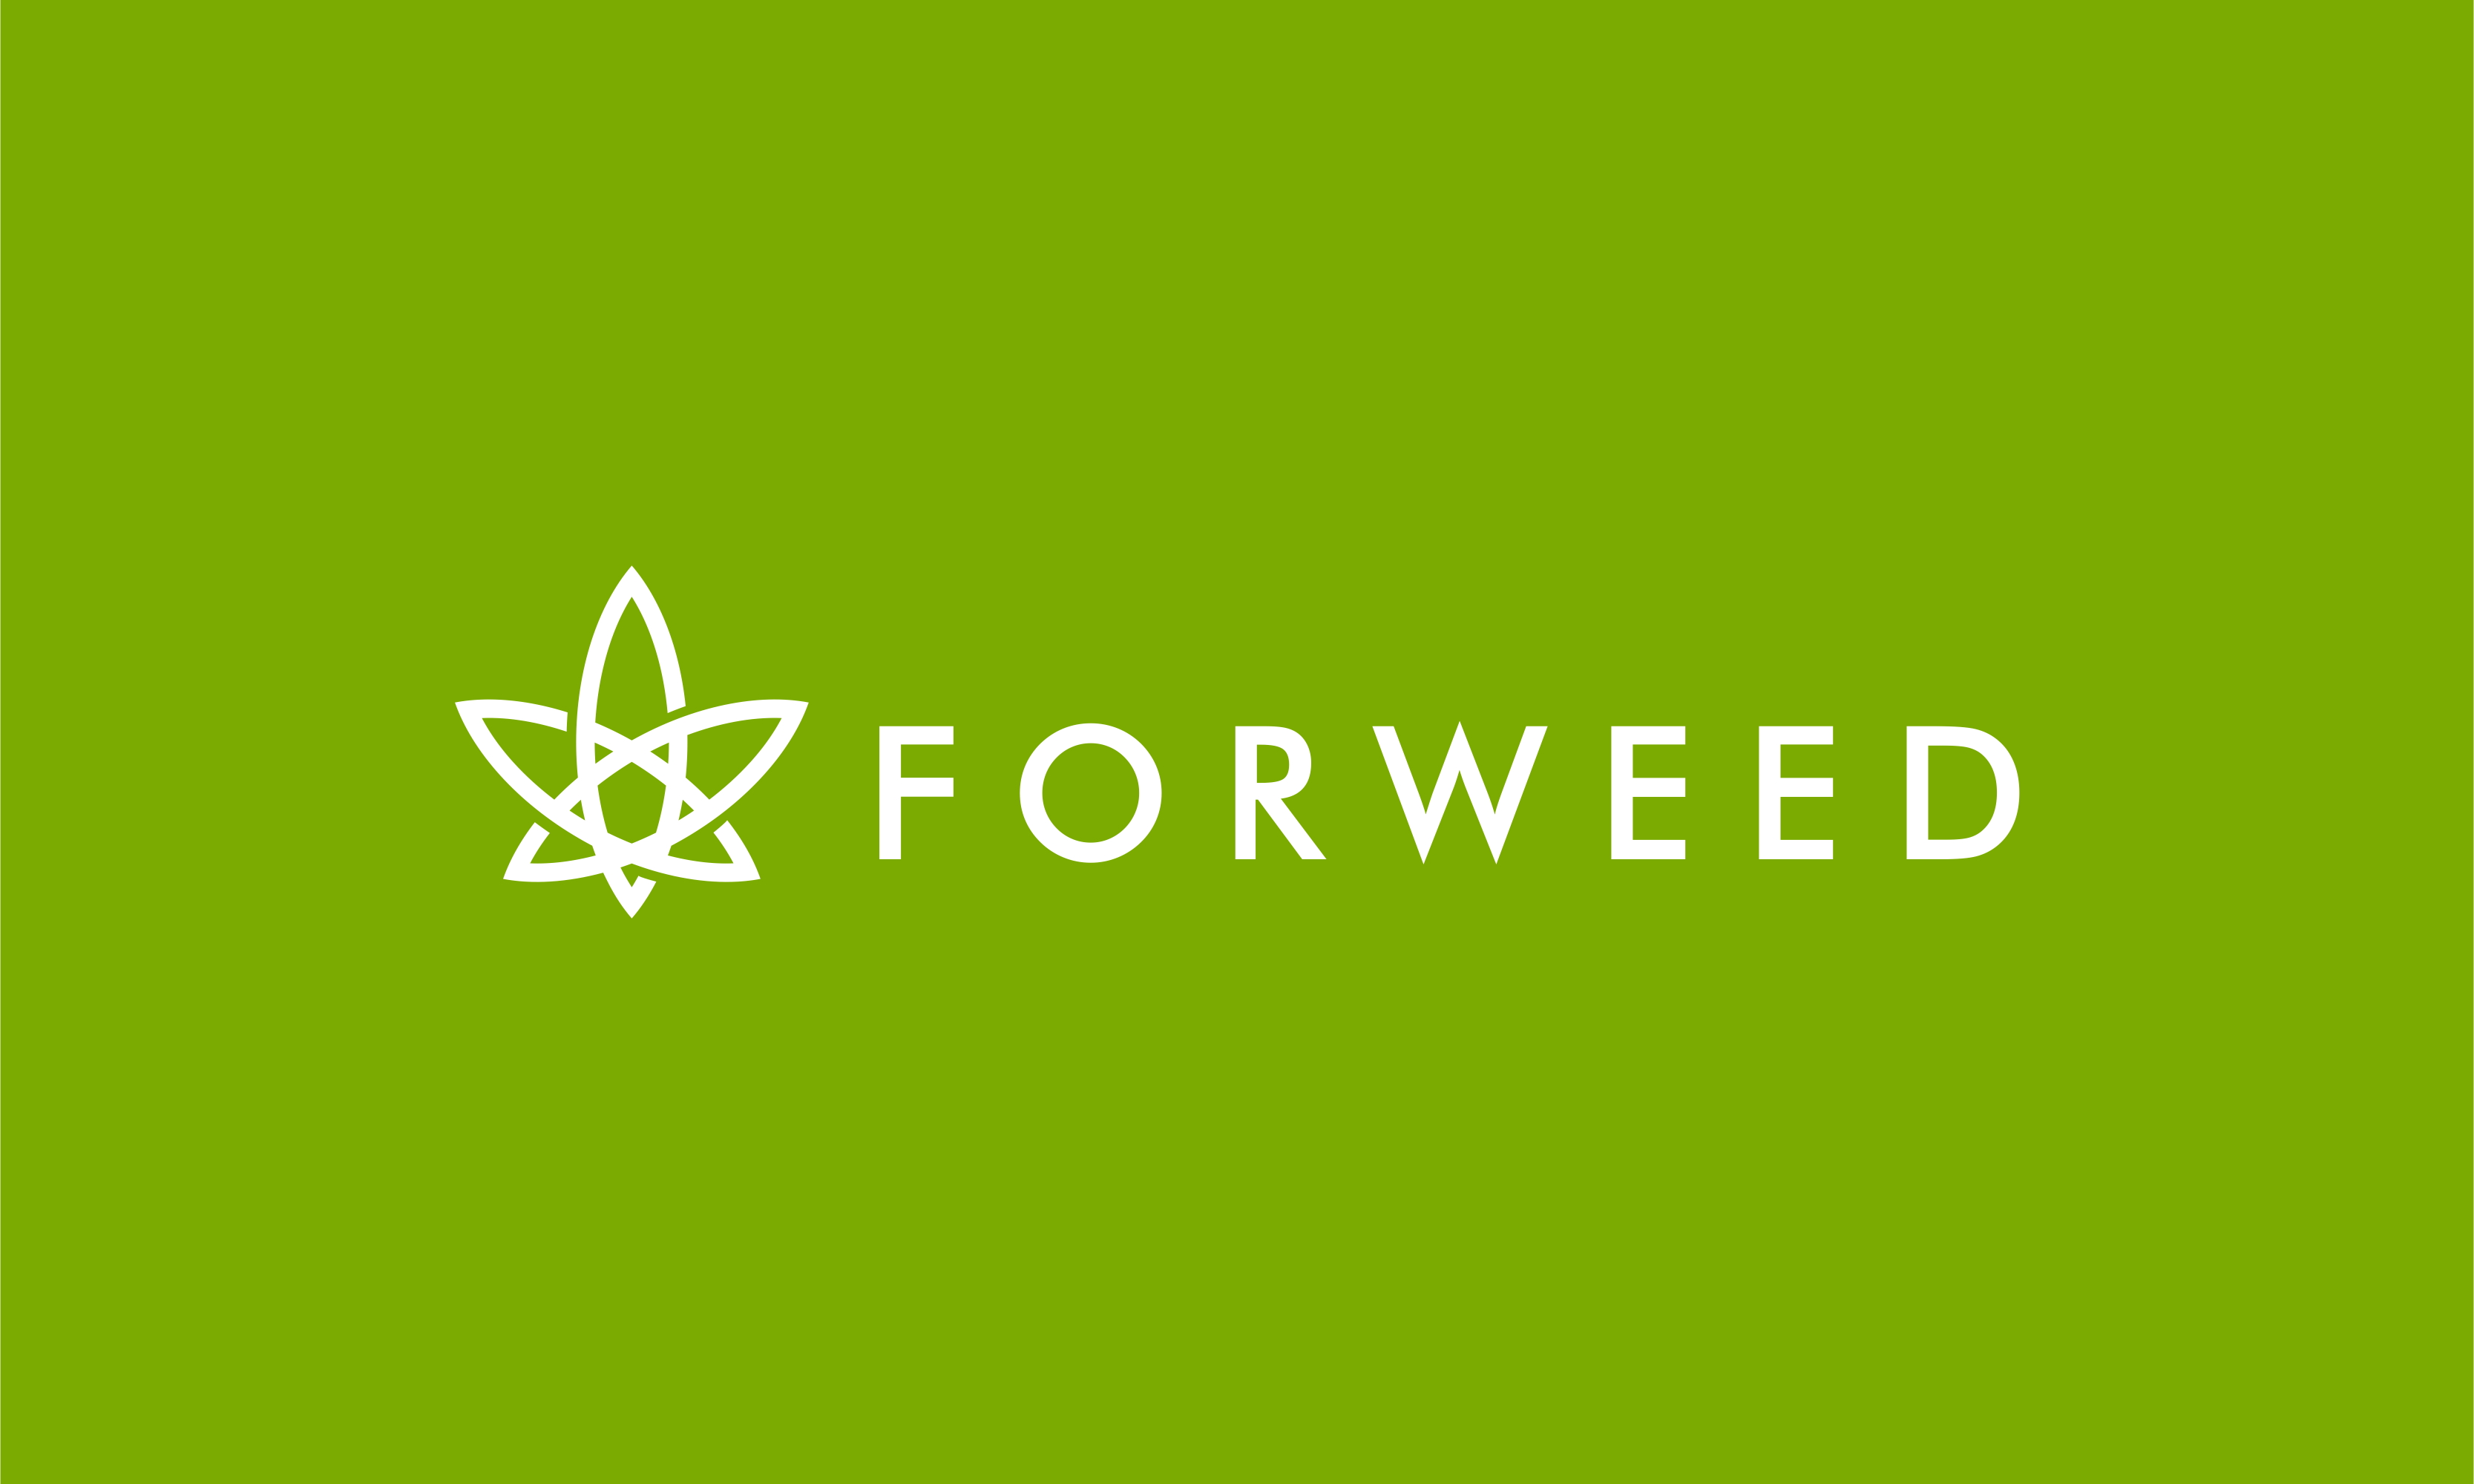 Forweed